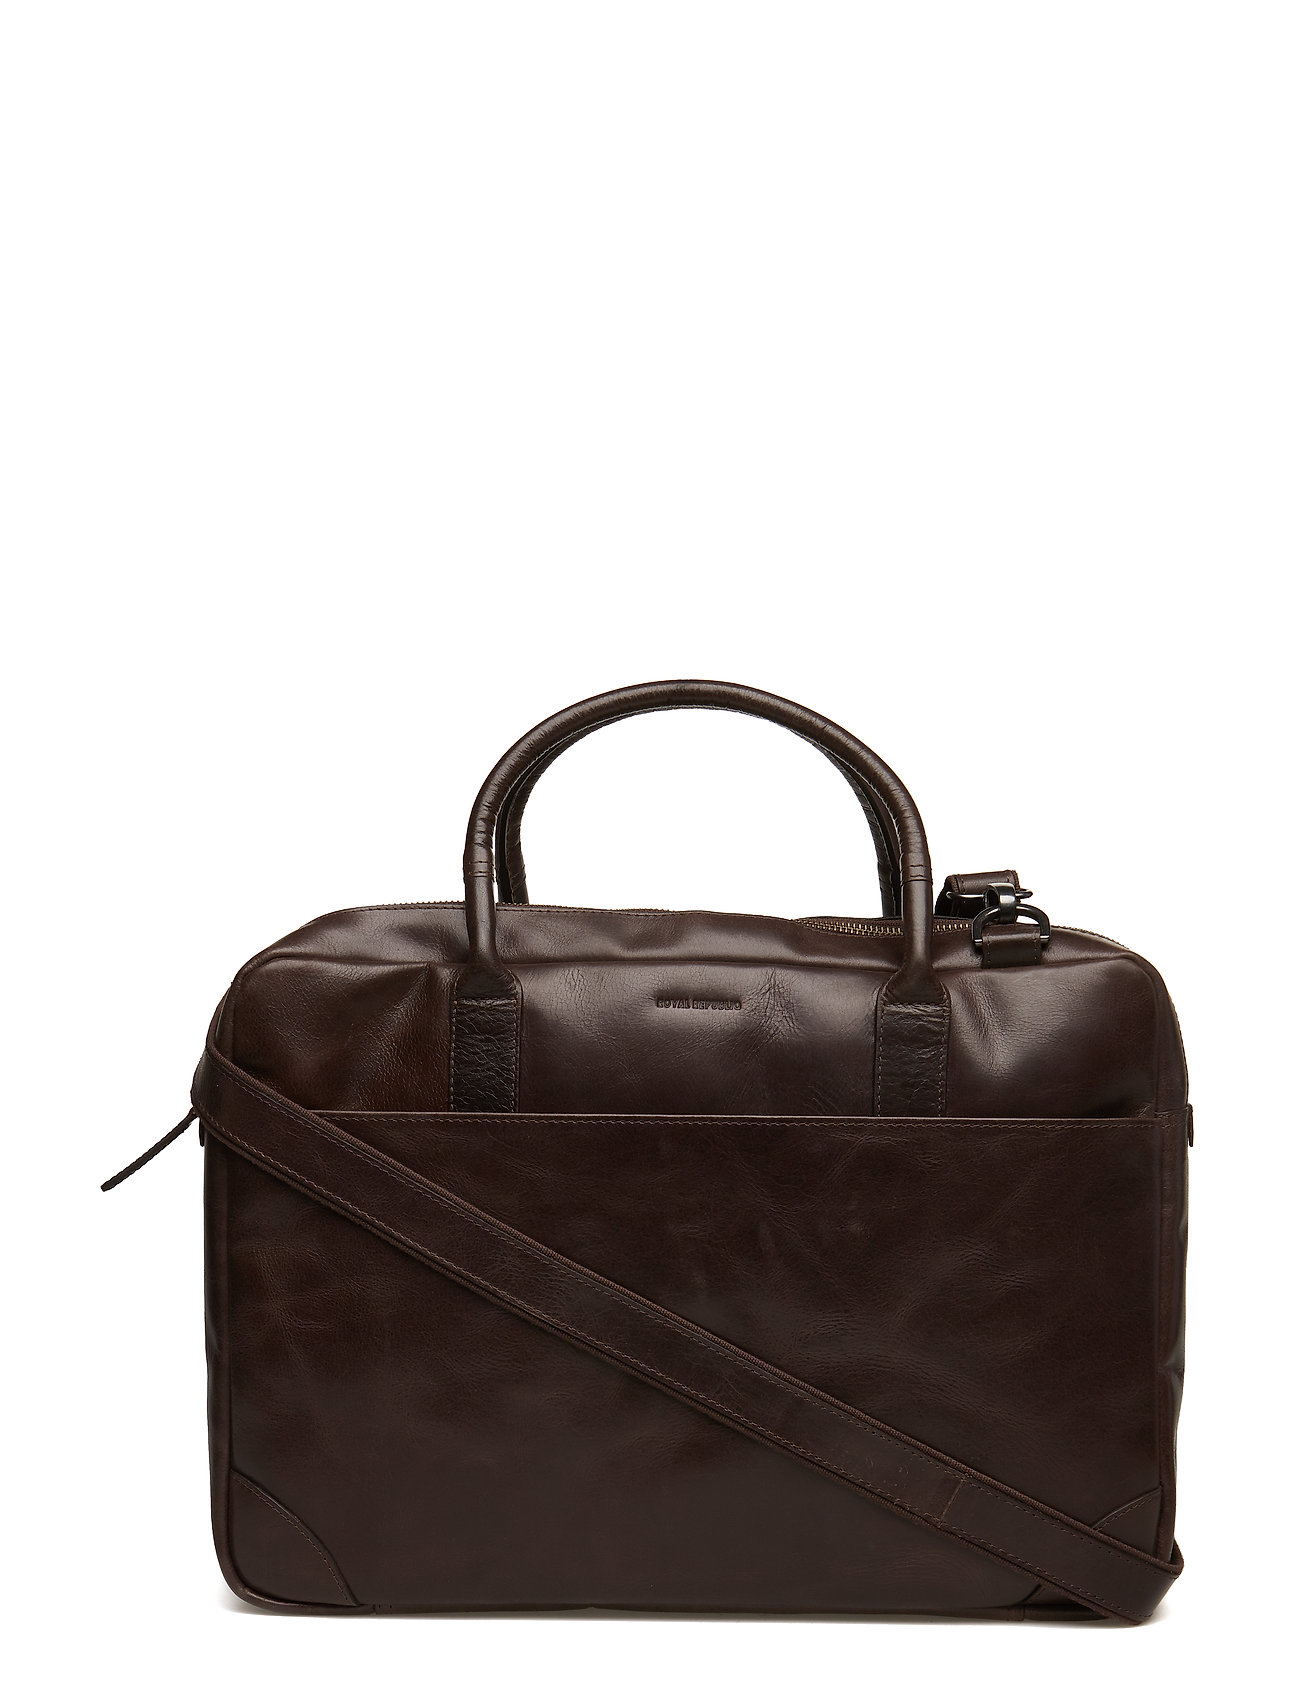 Royal RepubliQ Explorer laptop bag double - BROWN